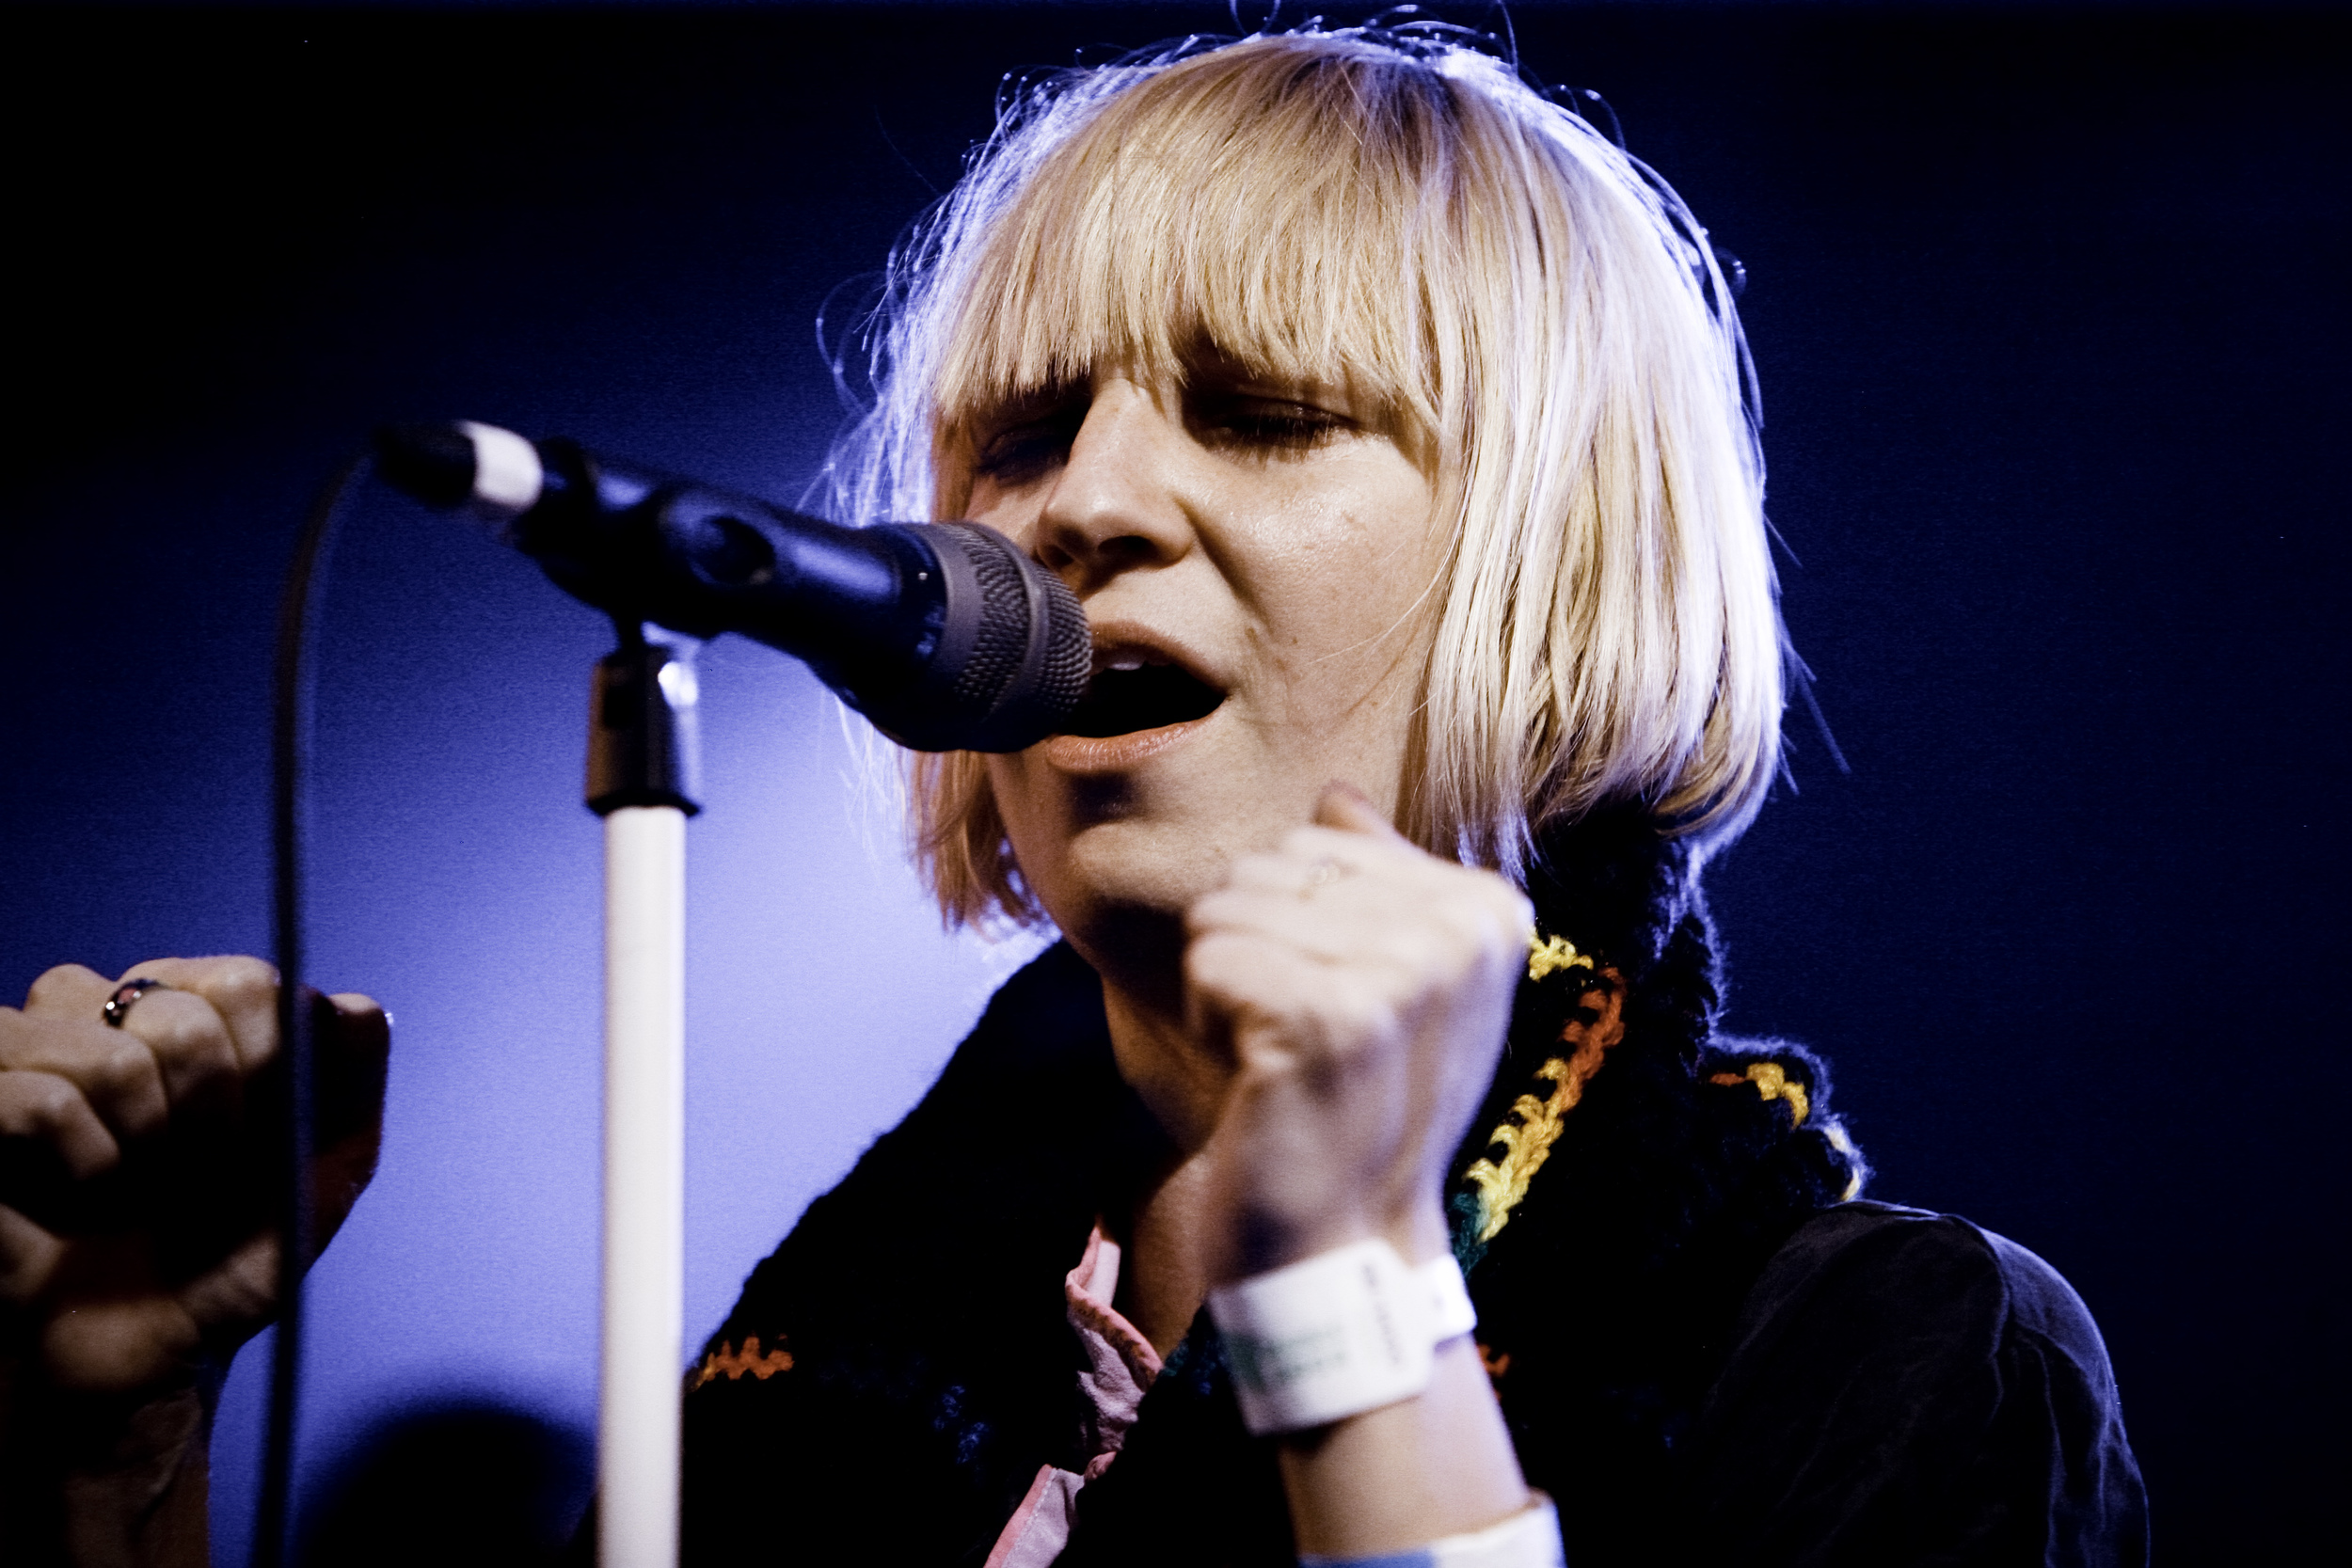 Sia performing live.